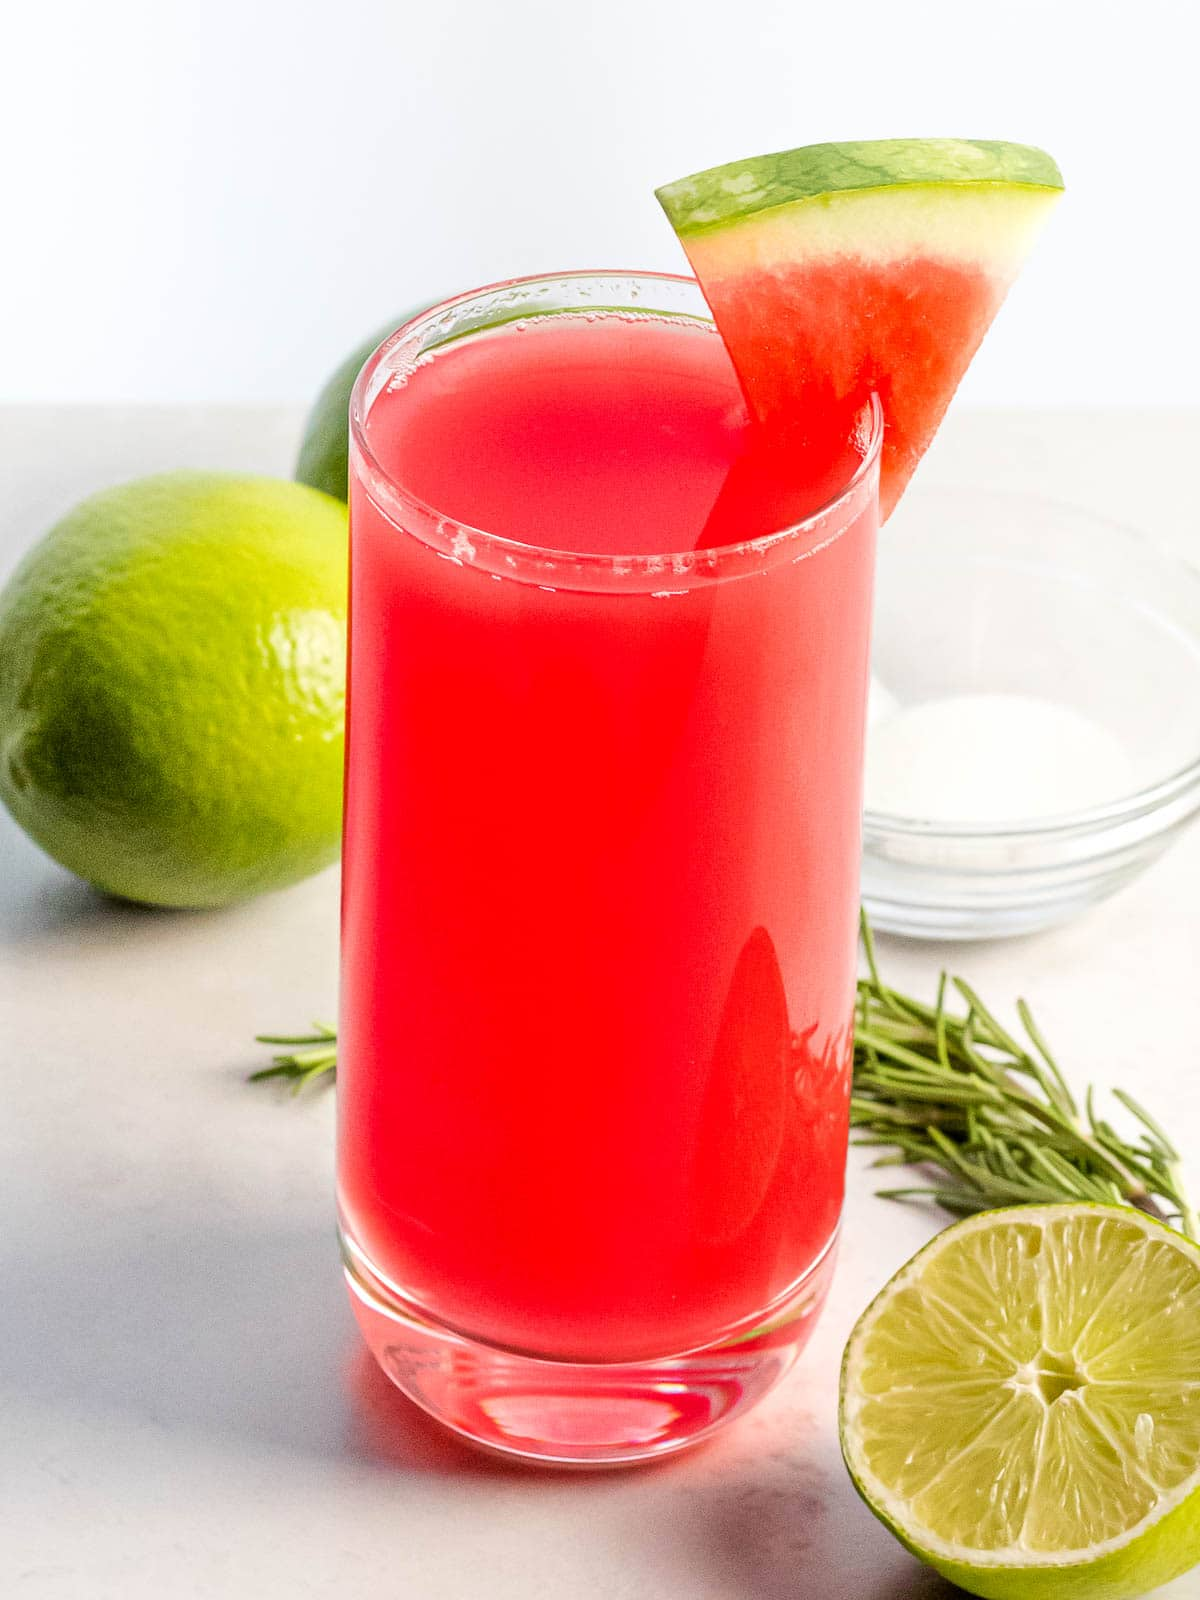 a glass of watermelon agua fresca with a piece of watermelon next to lime and herbs